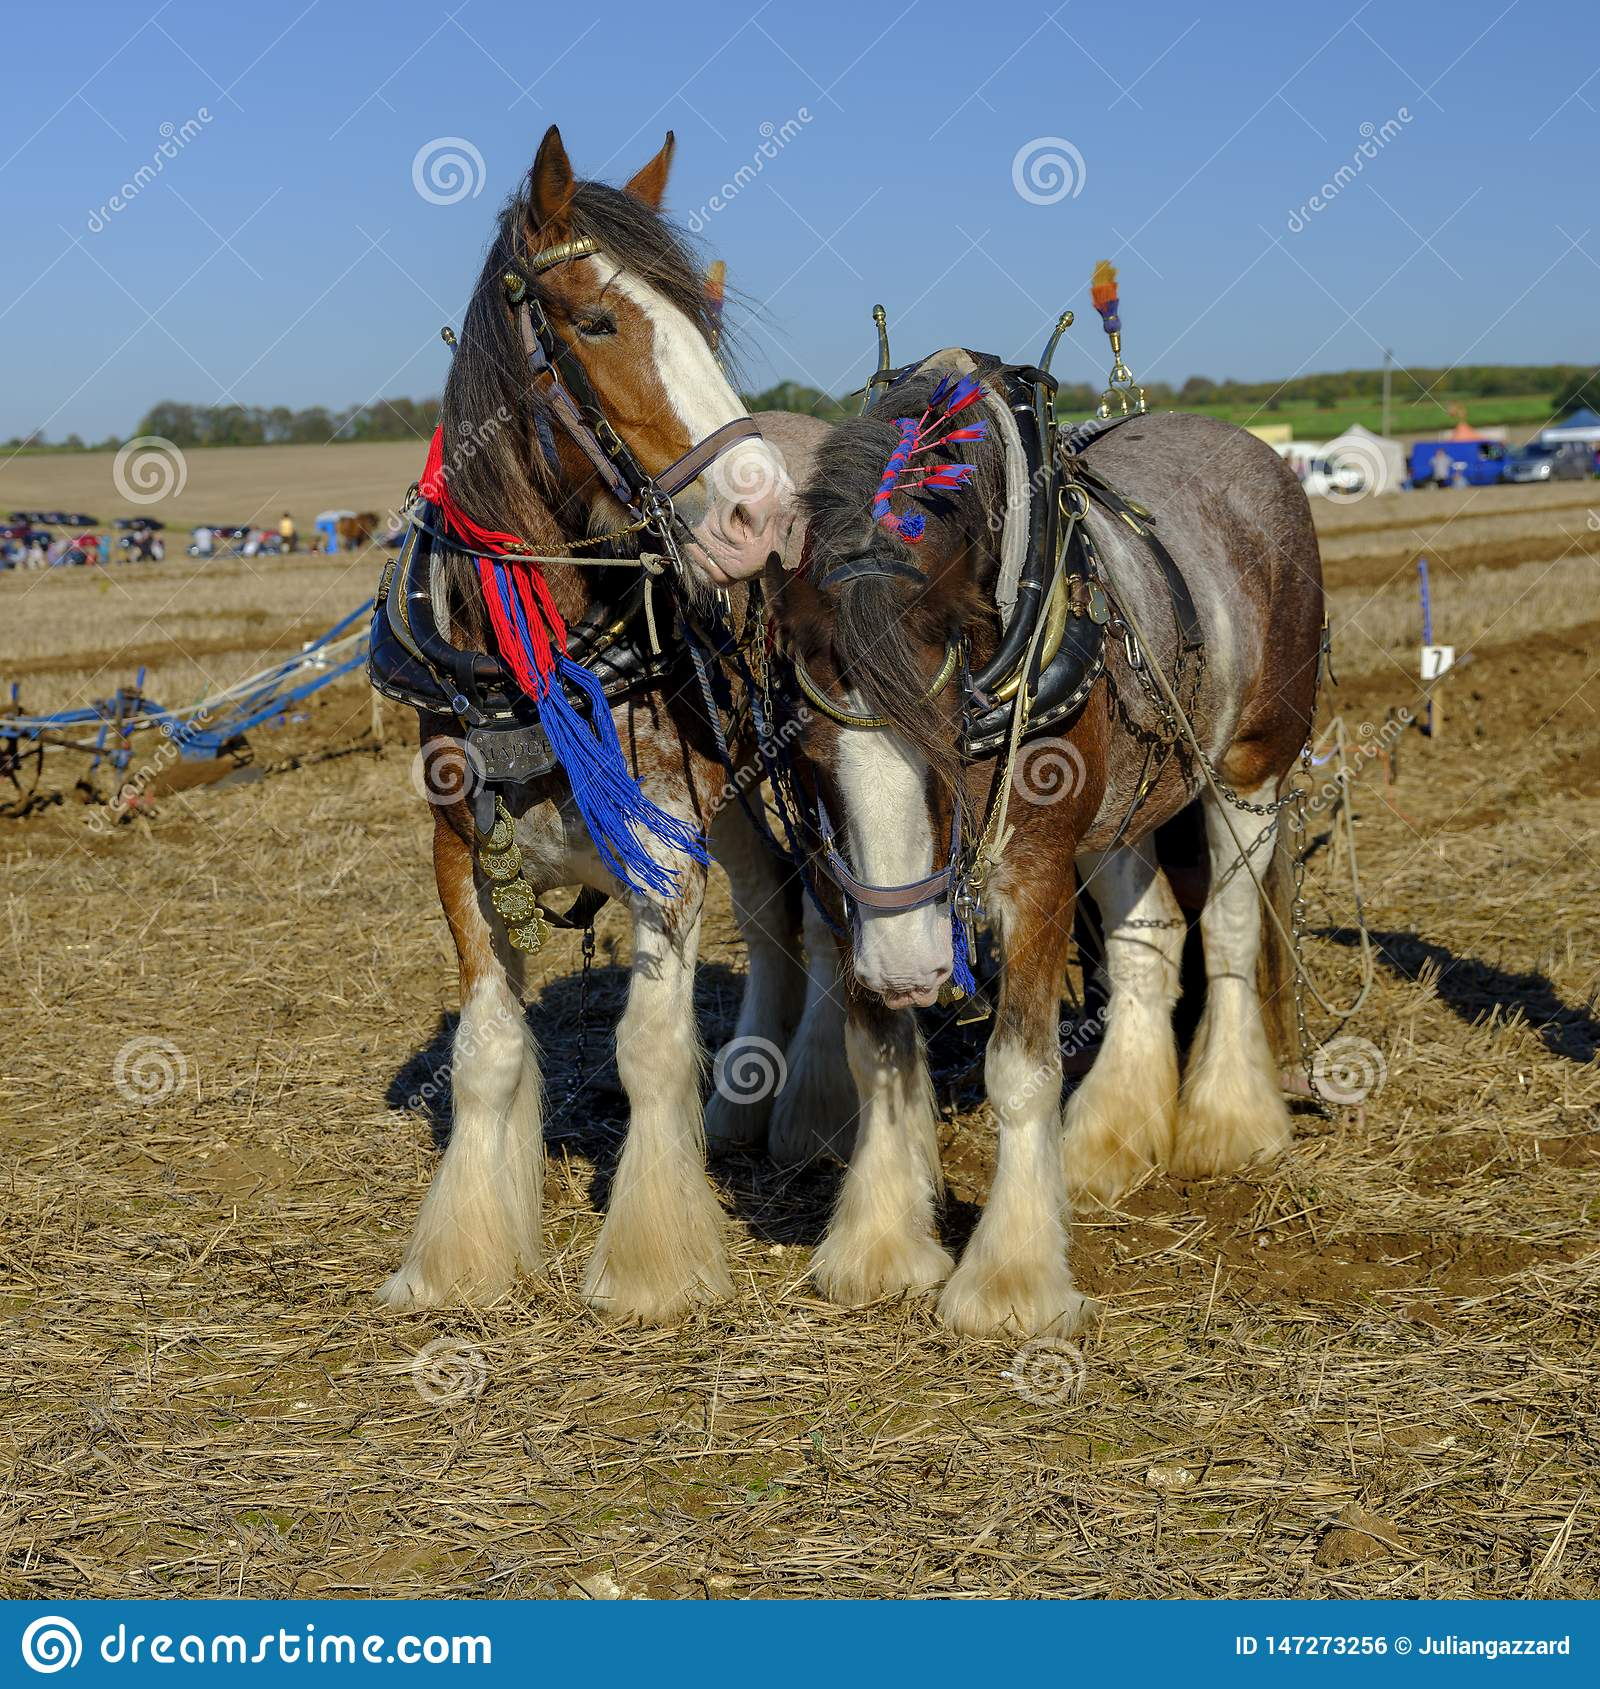 Heavy Horses ploughing competition at the SCHHA - South Coast Heavy Horse Association - annual show near Soberton 2018, Hampshire